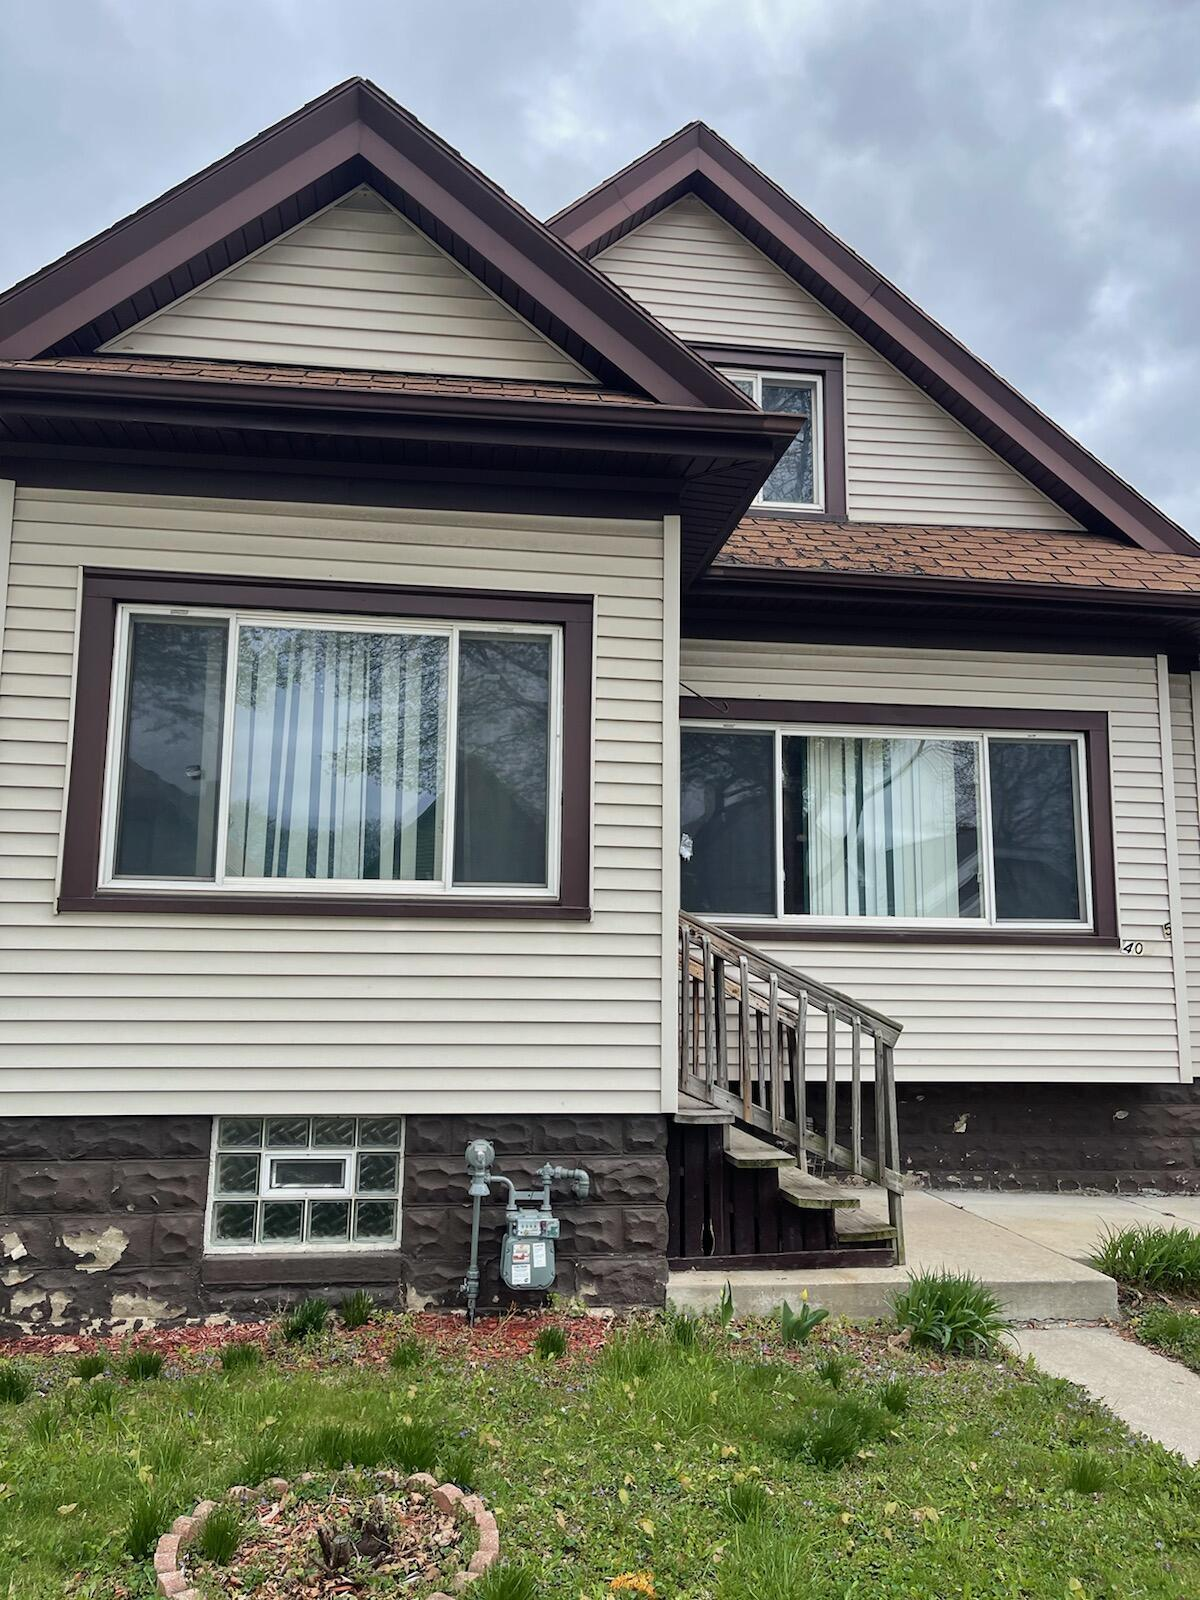 4052 N 18th St, Milwaukee, Wisconsin 53209, 3 Bedrooms Bedrooms, ,2 BathroomsBathrooms,Single Family,For Sale,4052 N 18th St,1.5,1736314